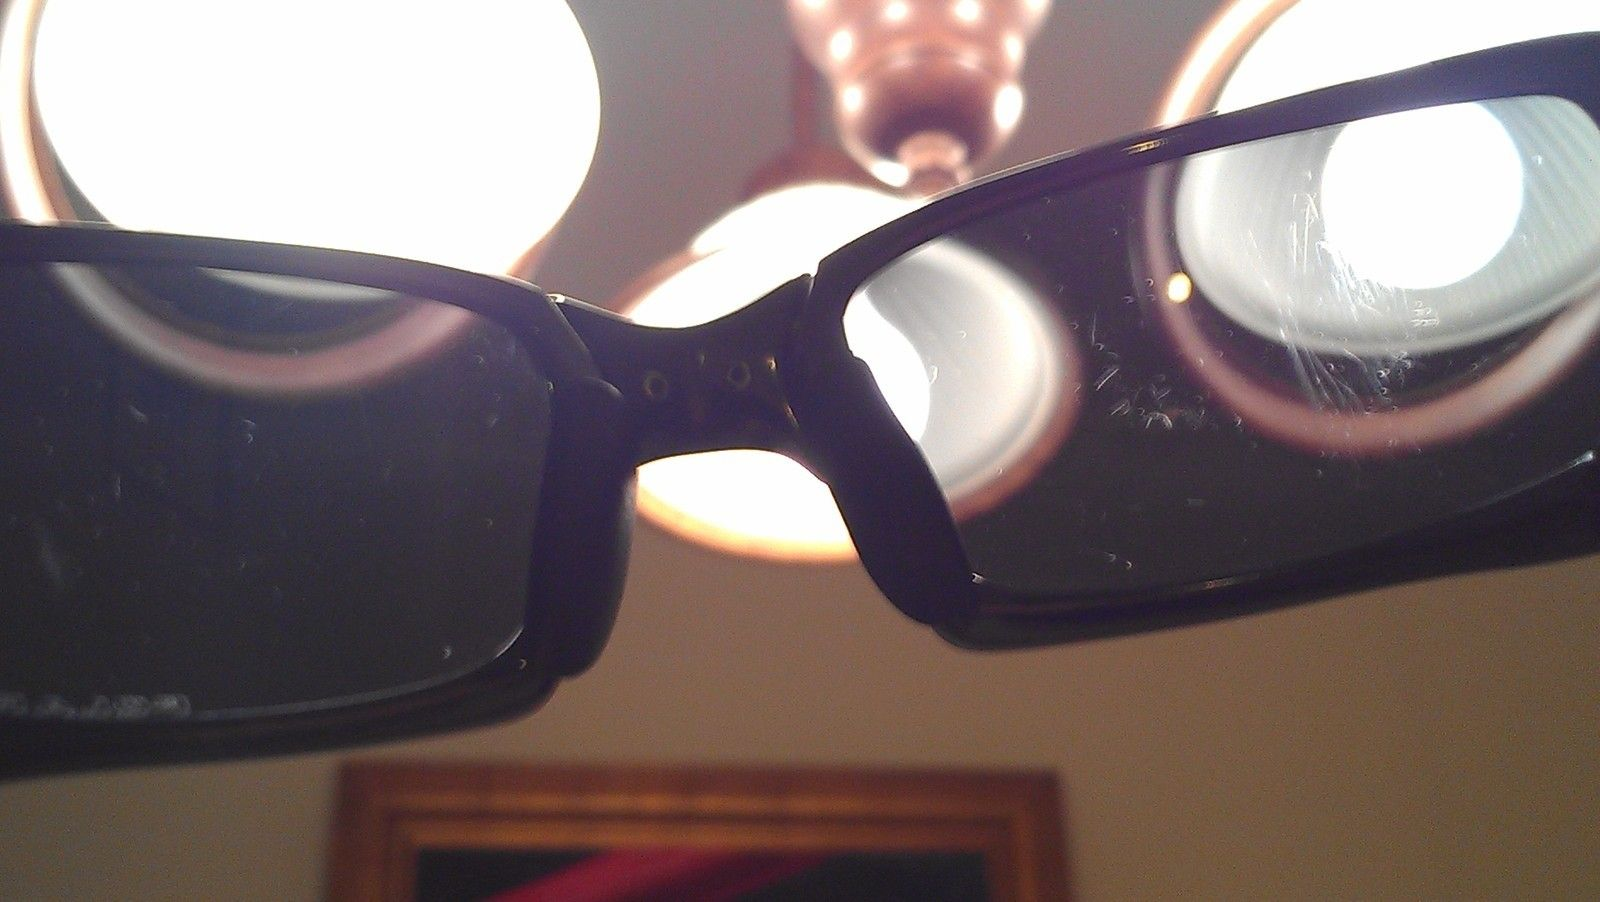 XS Polished Carbon/BIP + Brand New Oakley Eyepatch 2 - $325 OBO -- Make An Offer..Must Go - s655.jpg